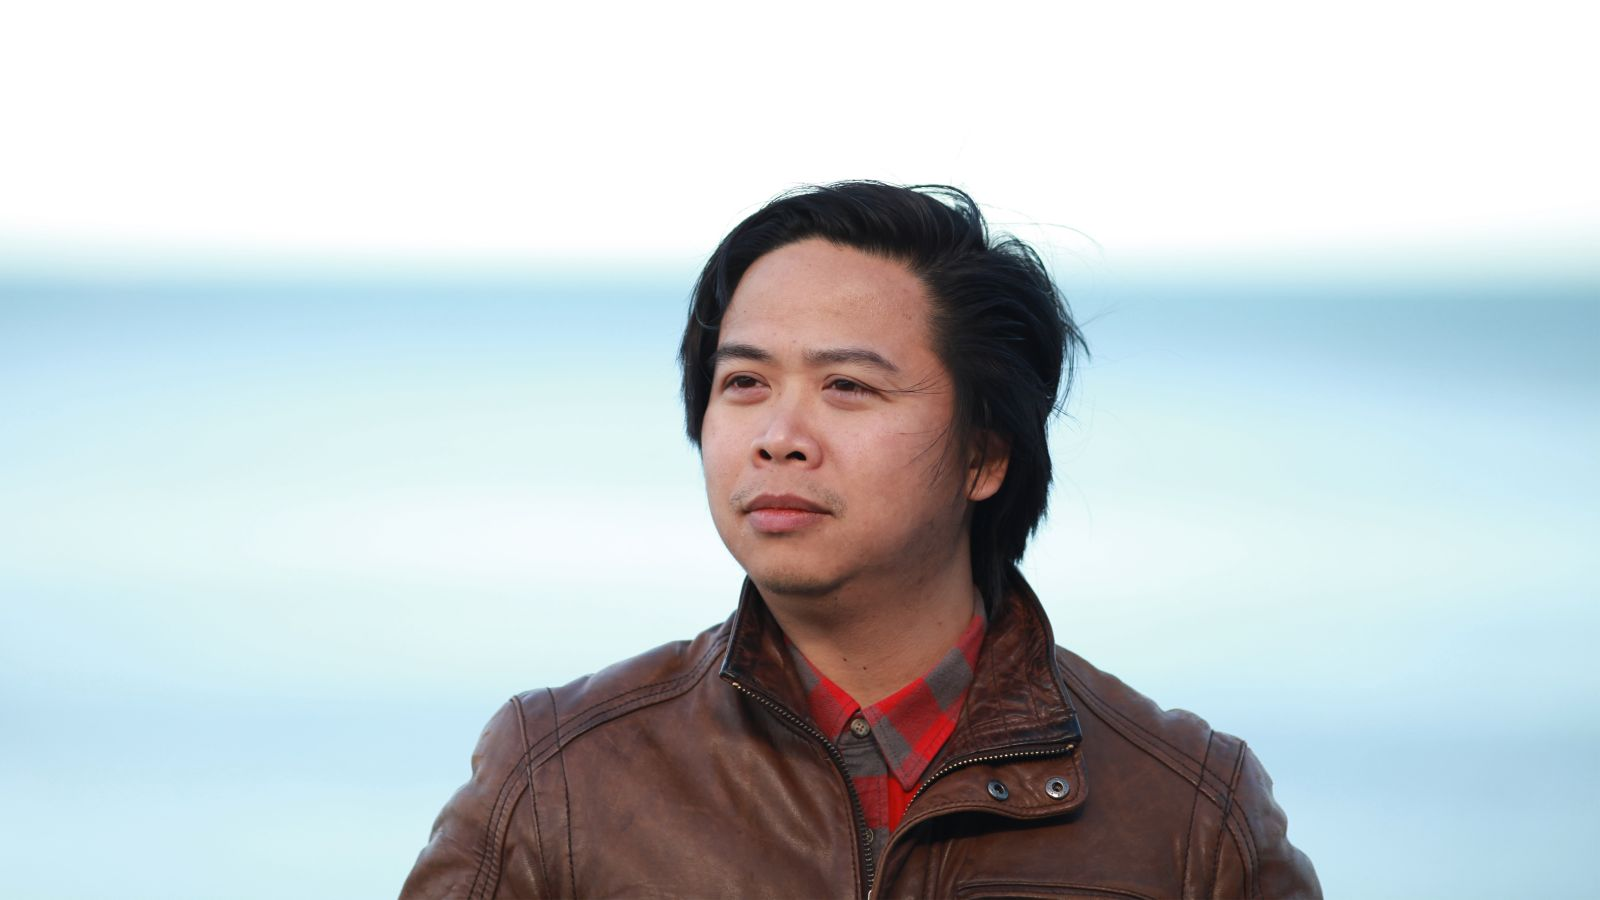 Quyet stands behind the ocean wearing a brown leather jacket looking away from the camera.